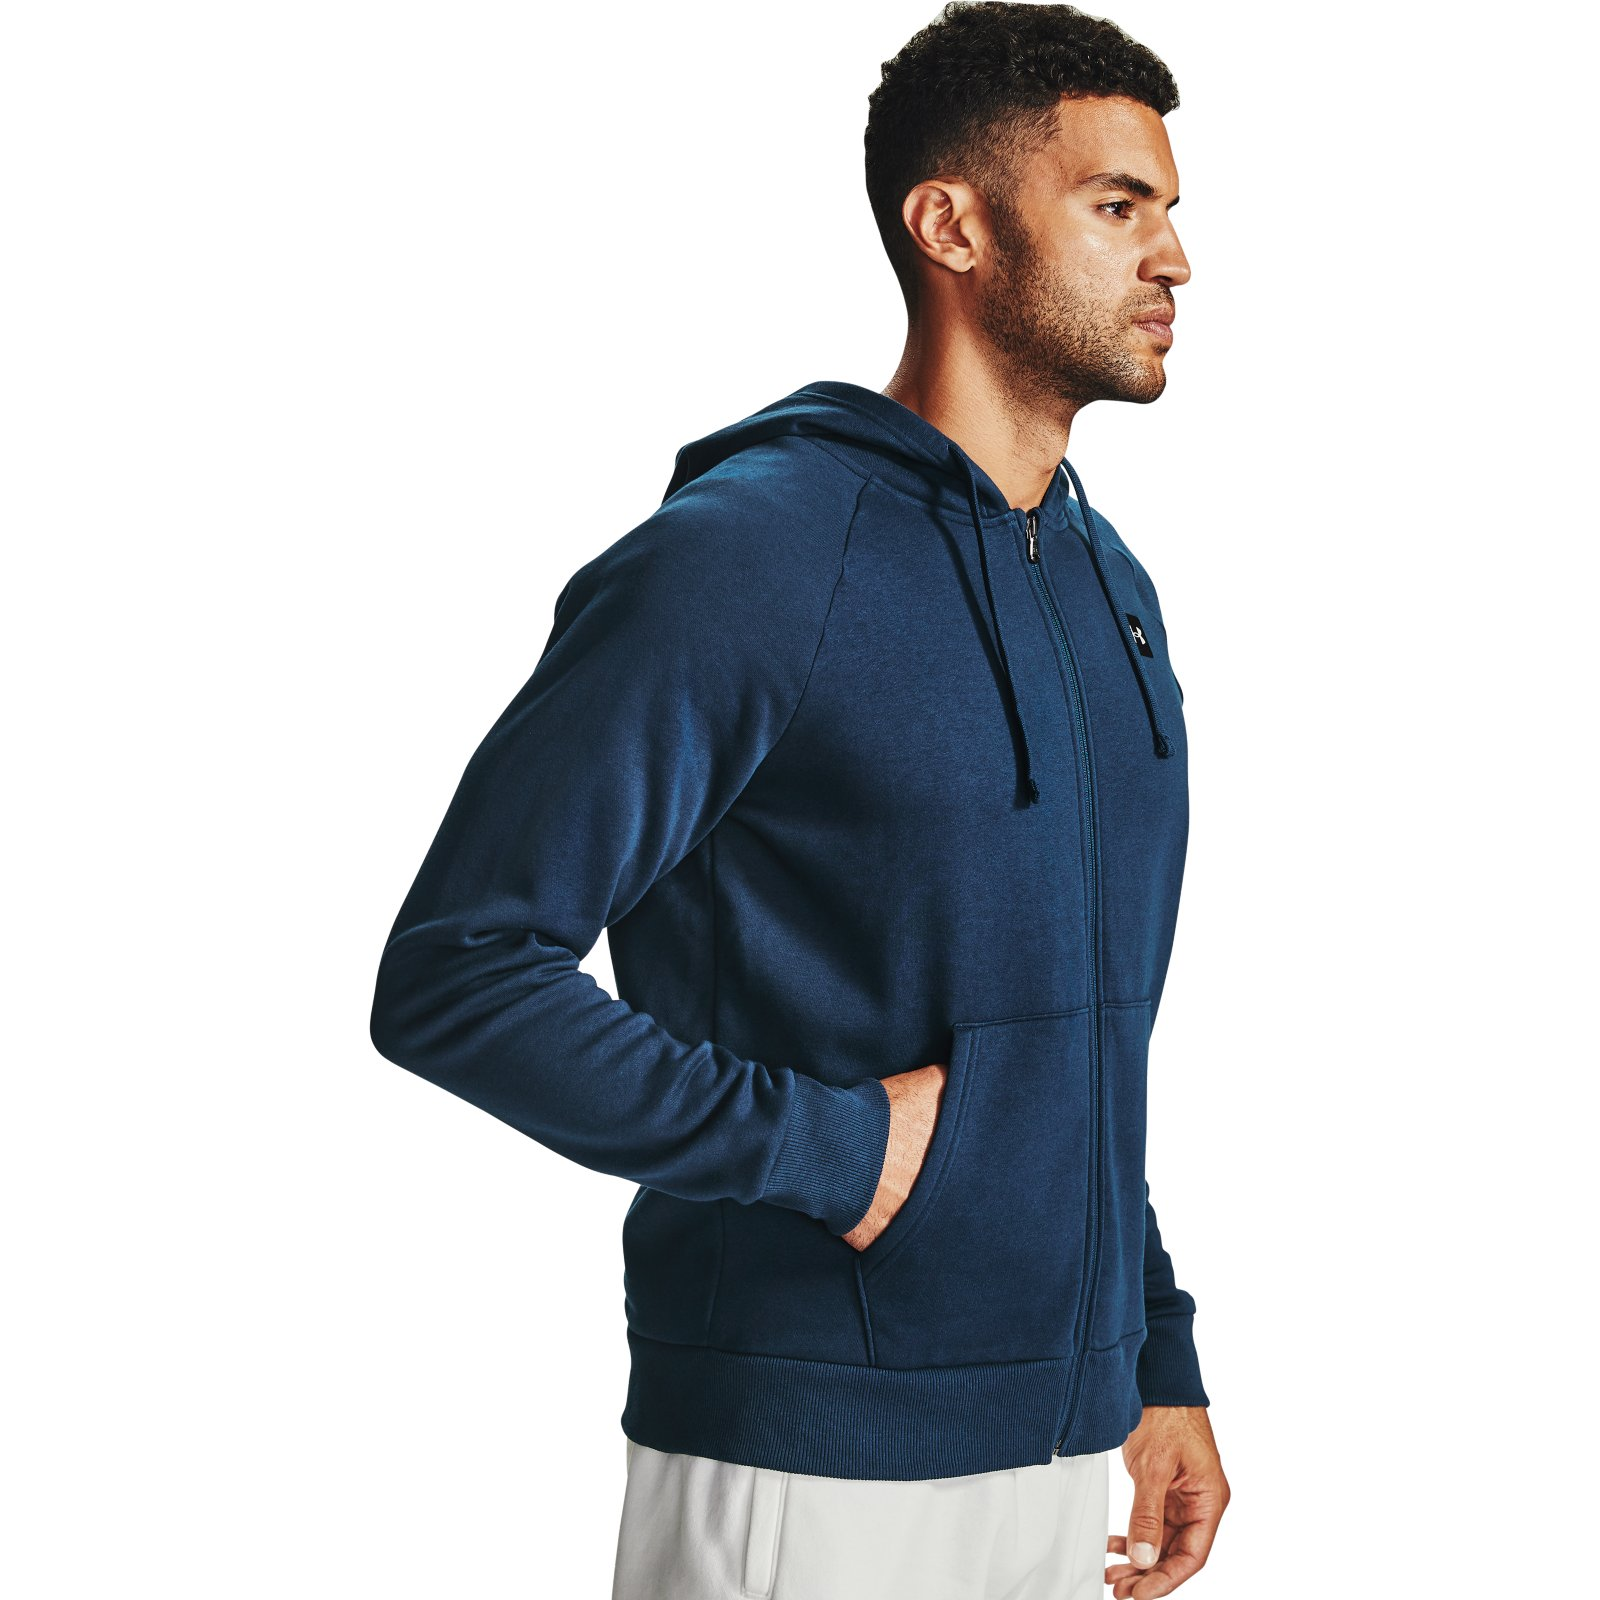 Толстовка Rival Fleece FZ Hoodie Under Armour Синий фото 4